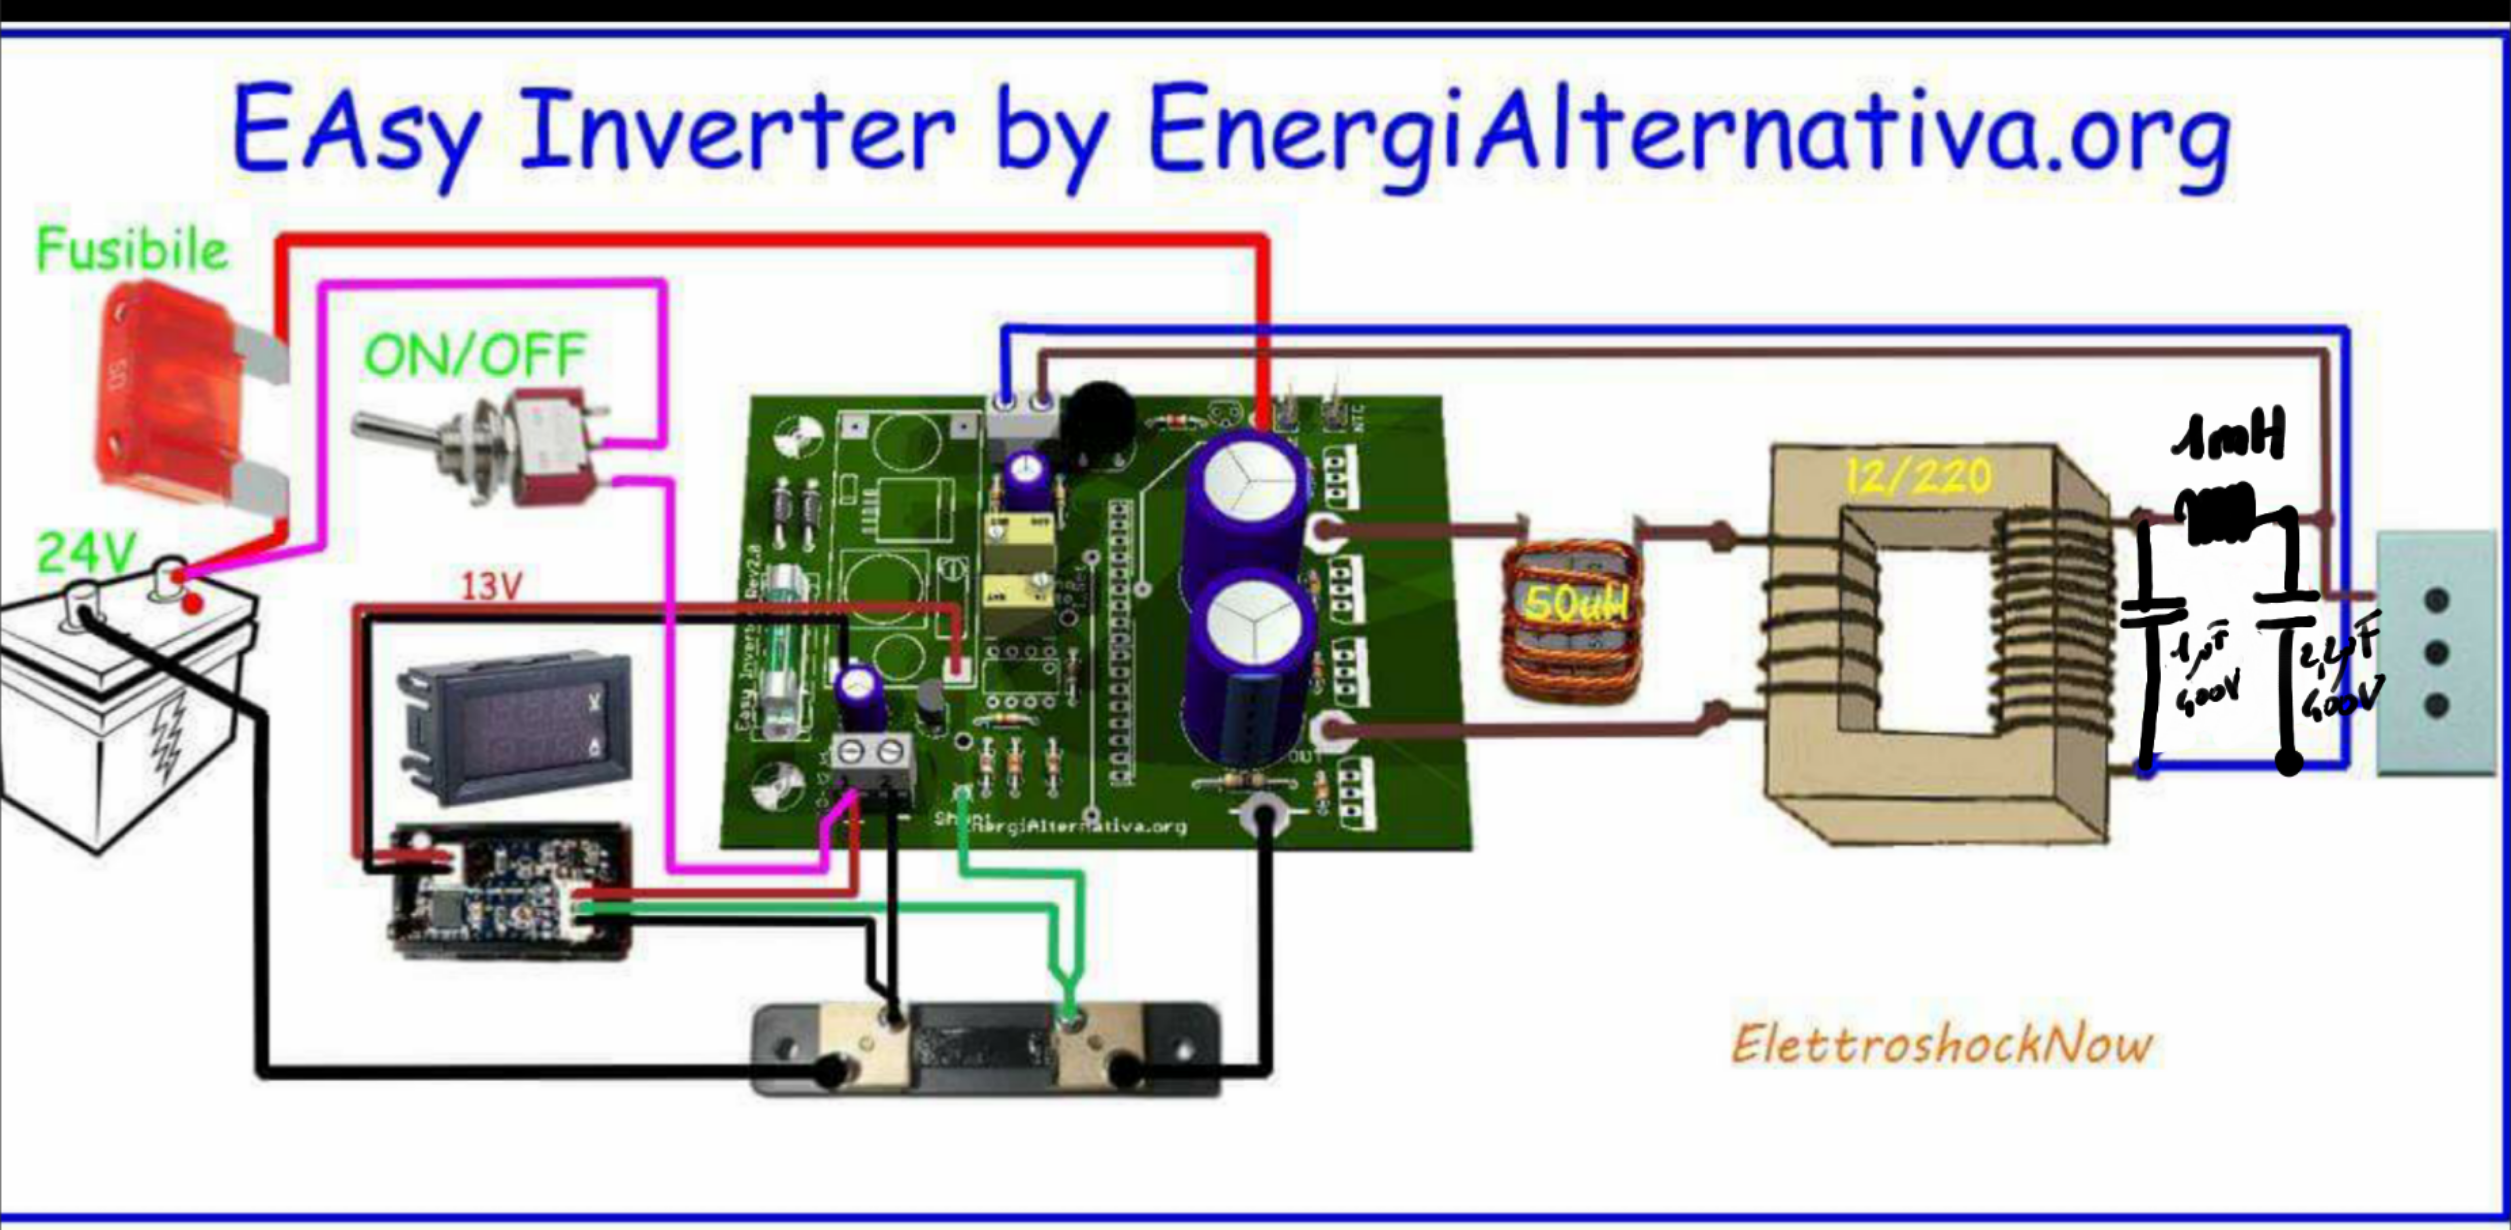 Easy_Inverter_Schematic.png